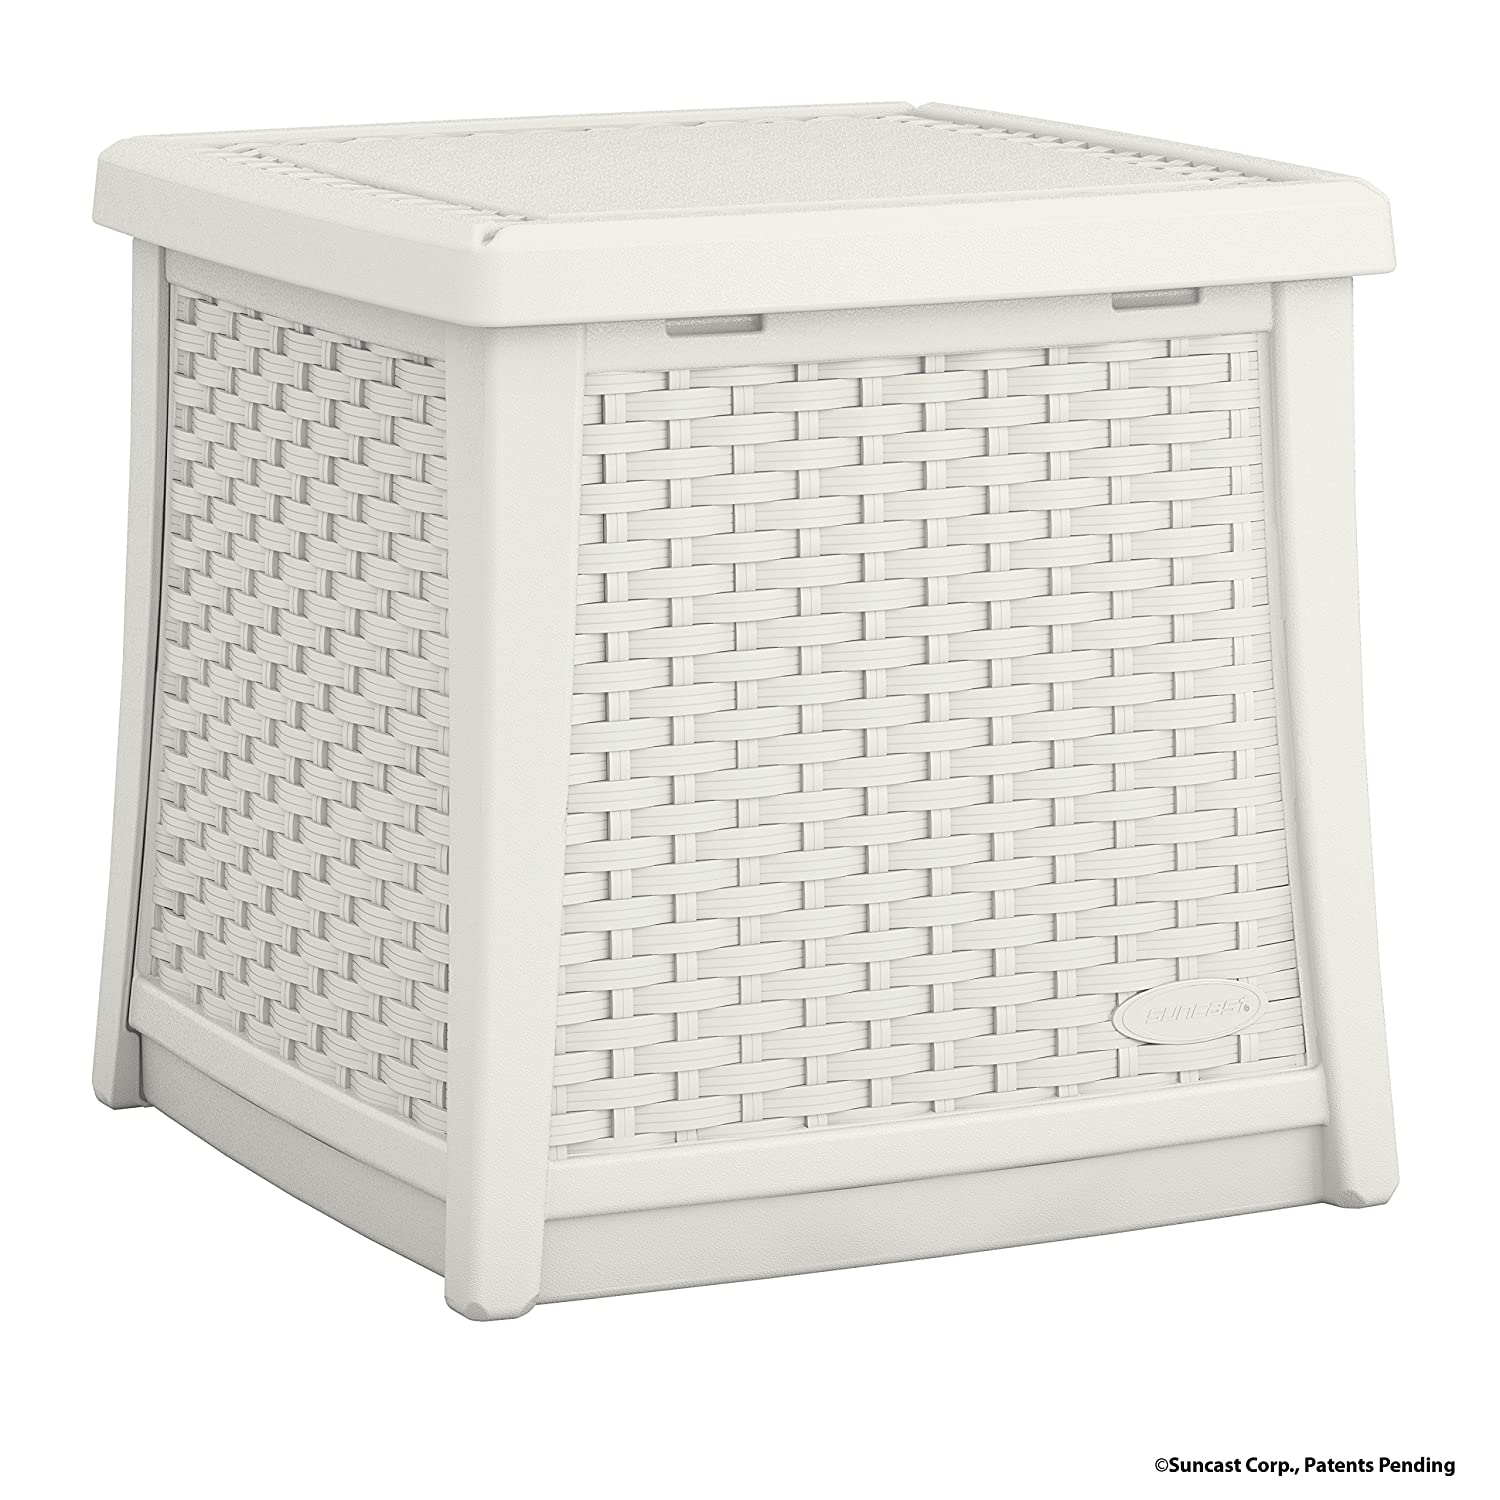 Suncast ELEMENTS End Table with Storage, White BMDB1310W